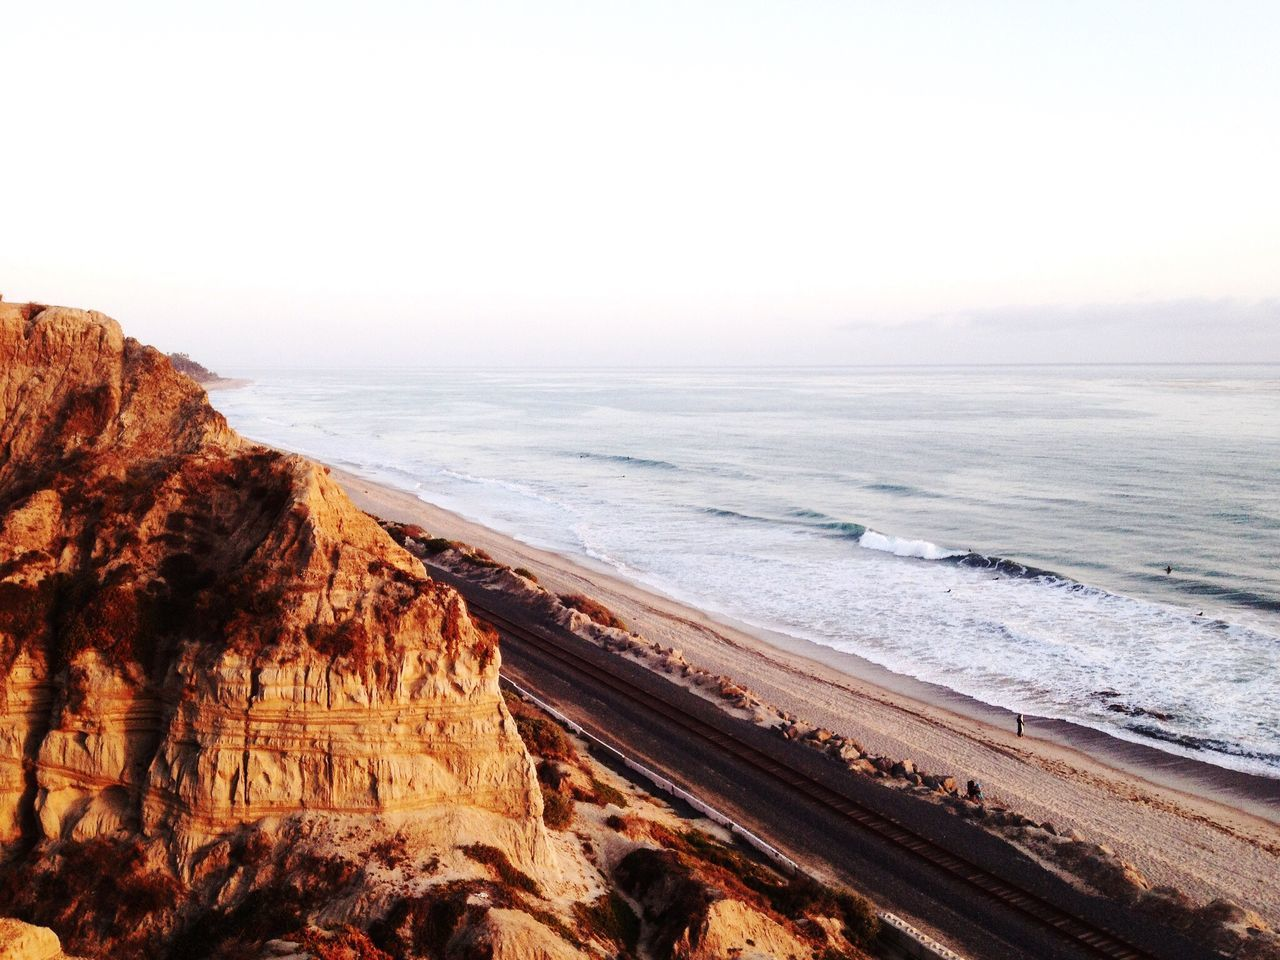 Open Edit Enjoying Life Check This Out California On The Road Shootermag Taking Photos Hello World Ocean Landscape